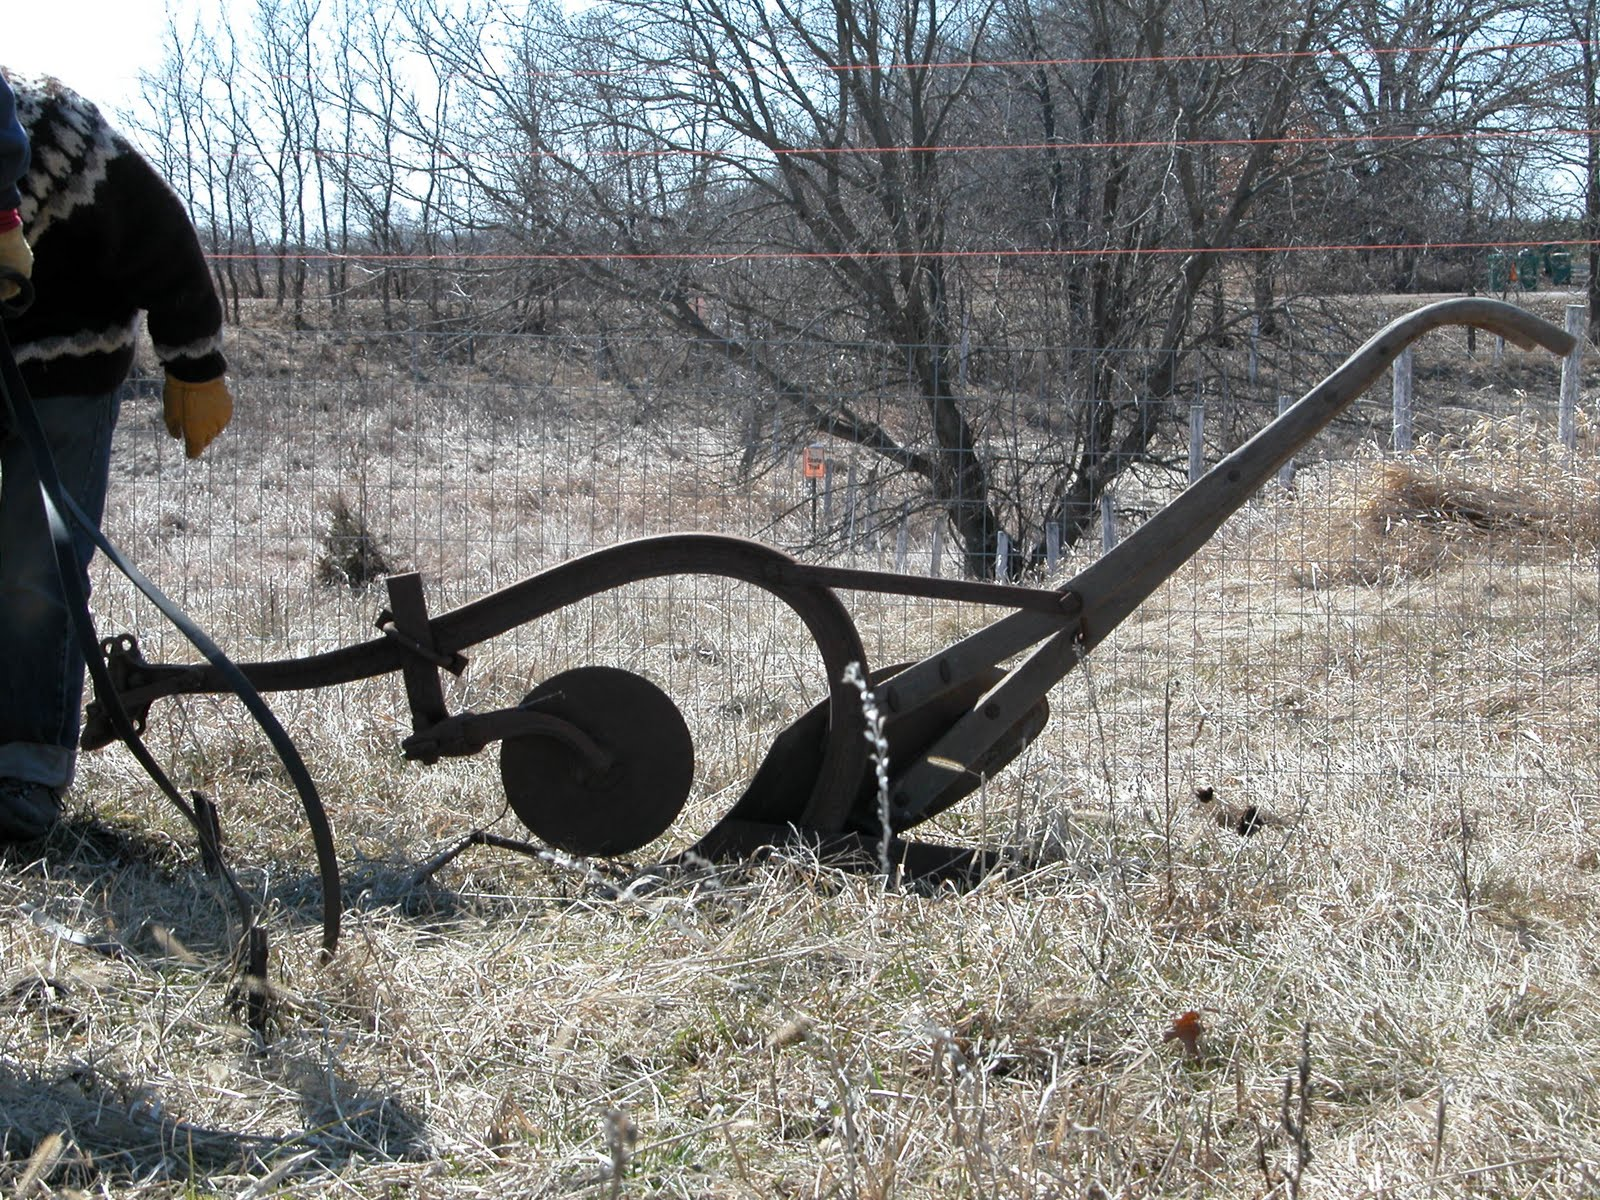 Horse Drawn Turning Plow http://littleflowerfarmcsa.blogspot.com/2010/03/draft-horse-ploughing.html